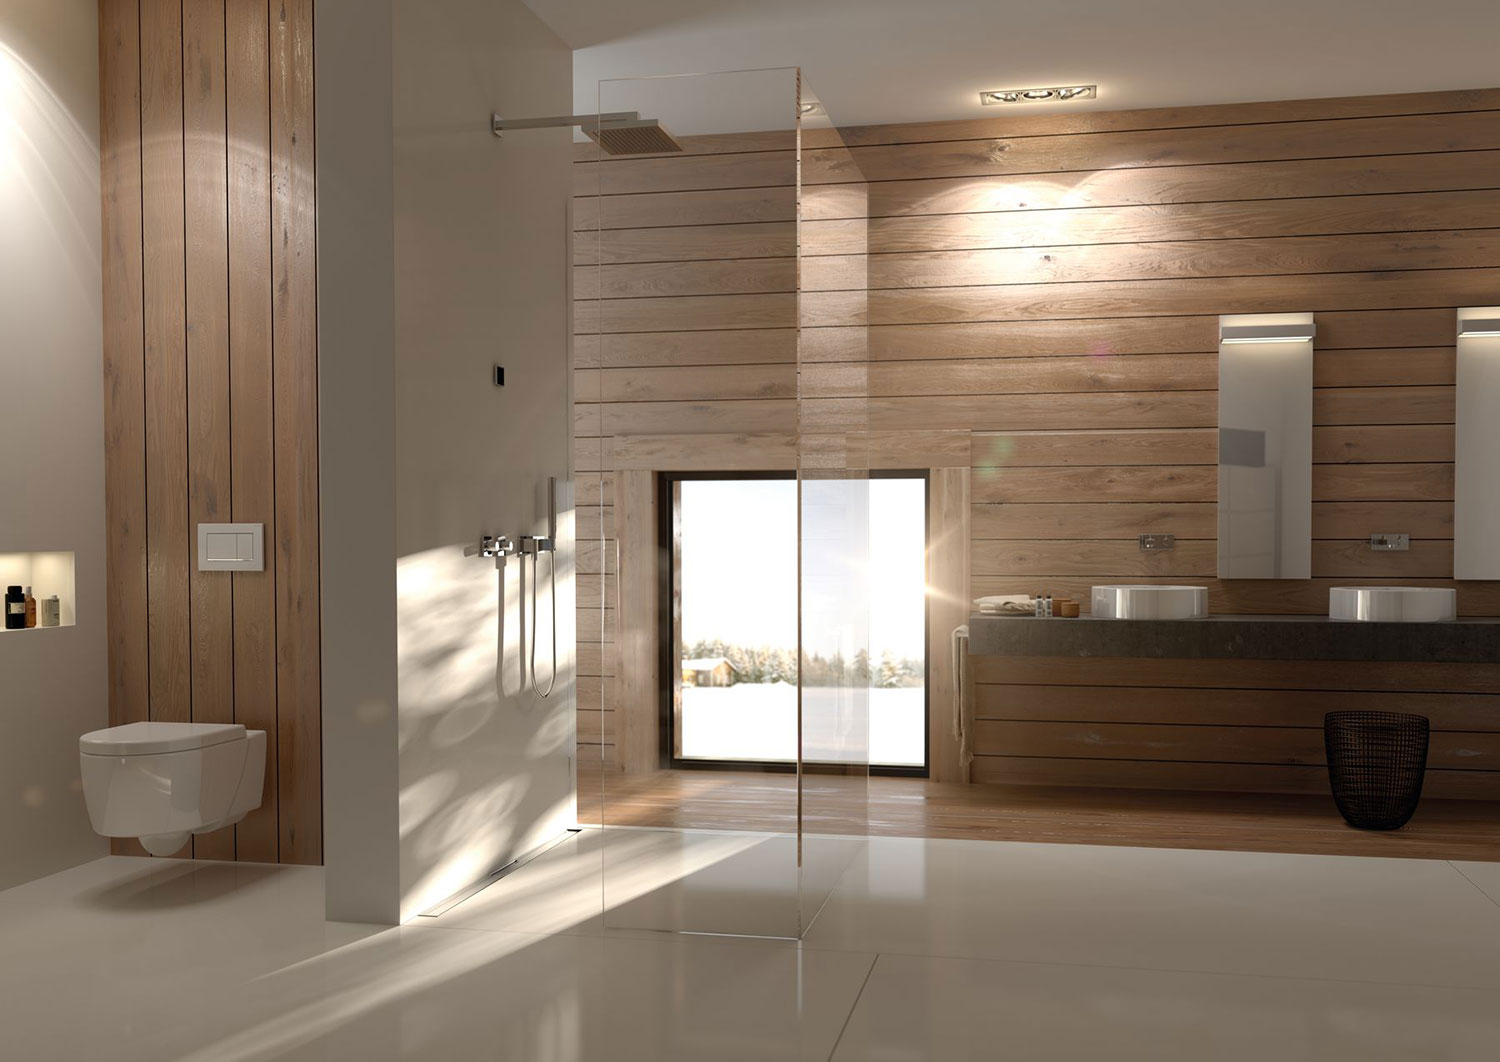 CLEANLINE 20 SHOWER CHANNEL